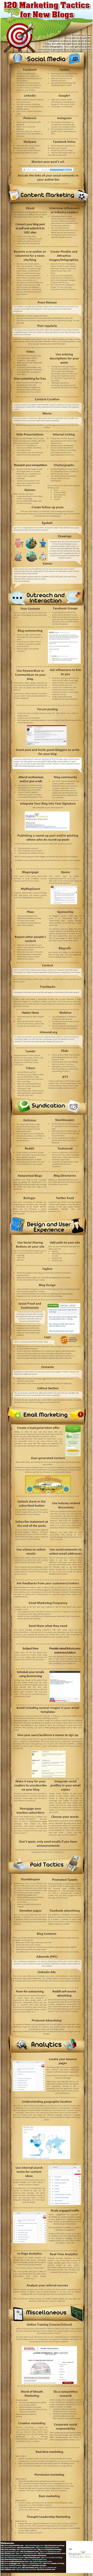 120 Marketing Tactics For Your Blog (Infographic) image 120 Marketing Tactics for New Blogs infographic